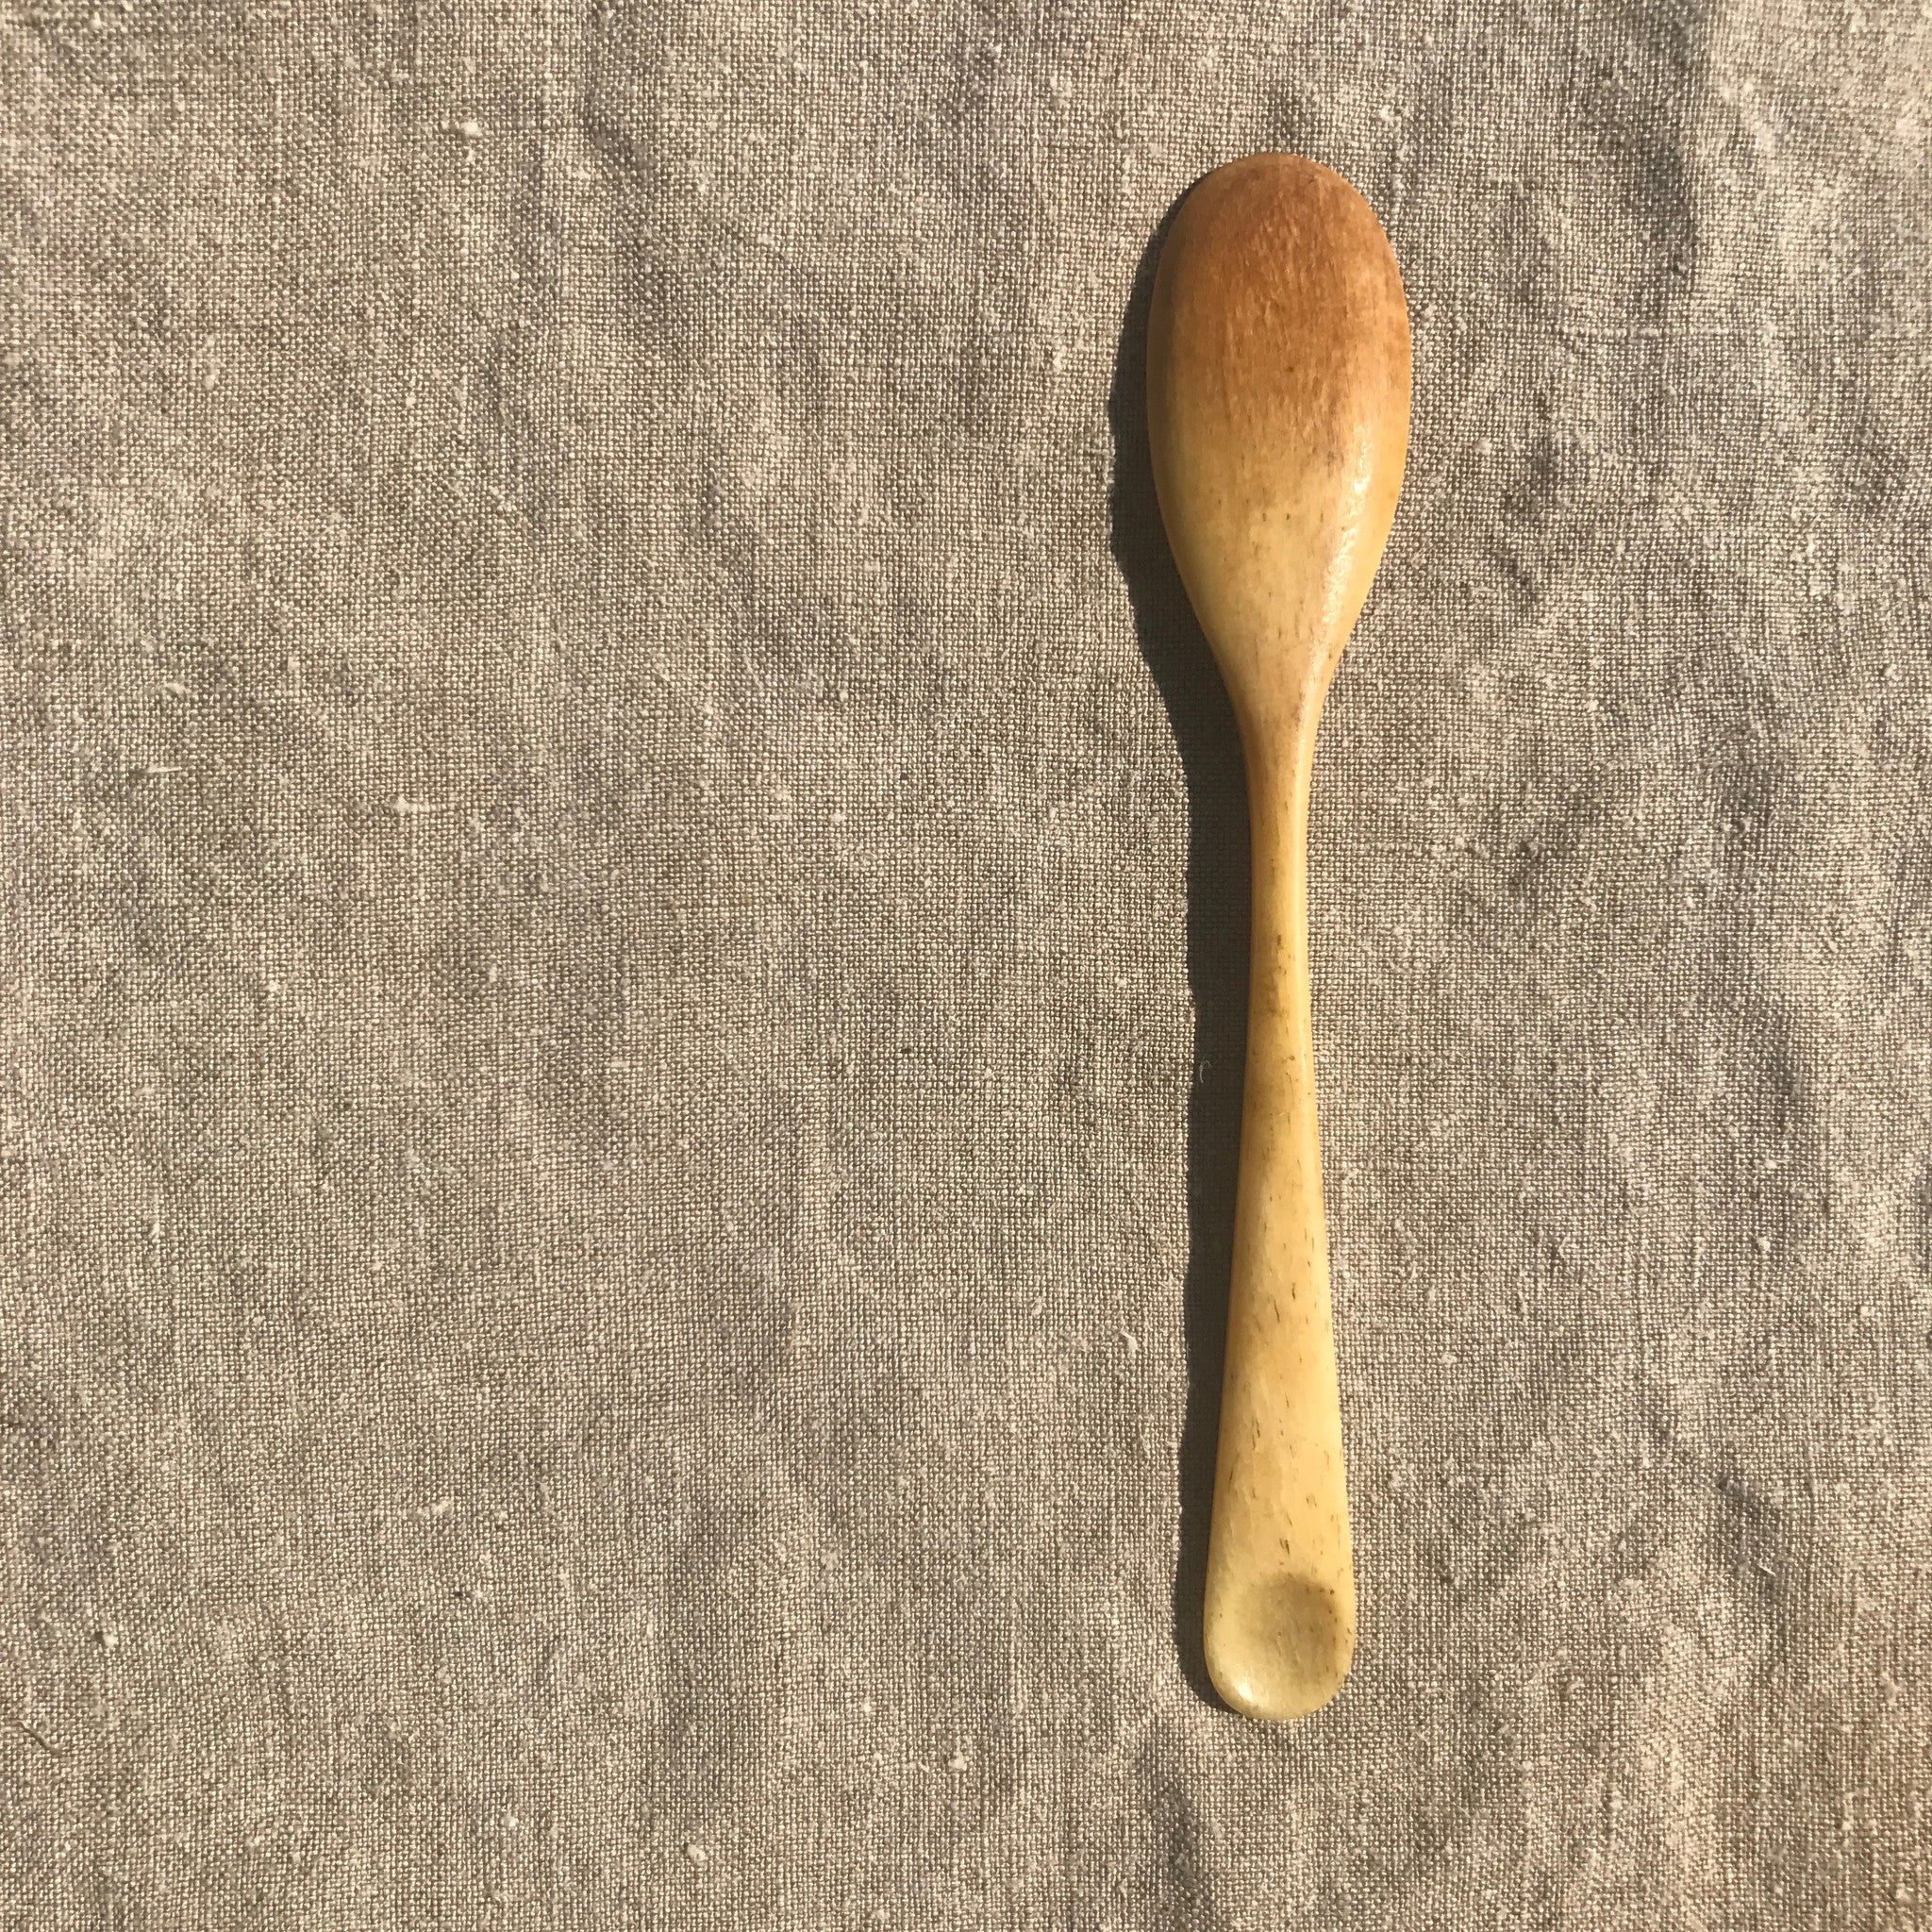 seaman's caviar spoon (5 of 7)